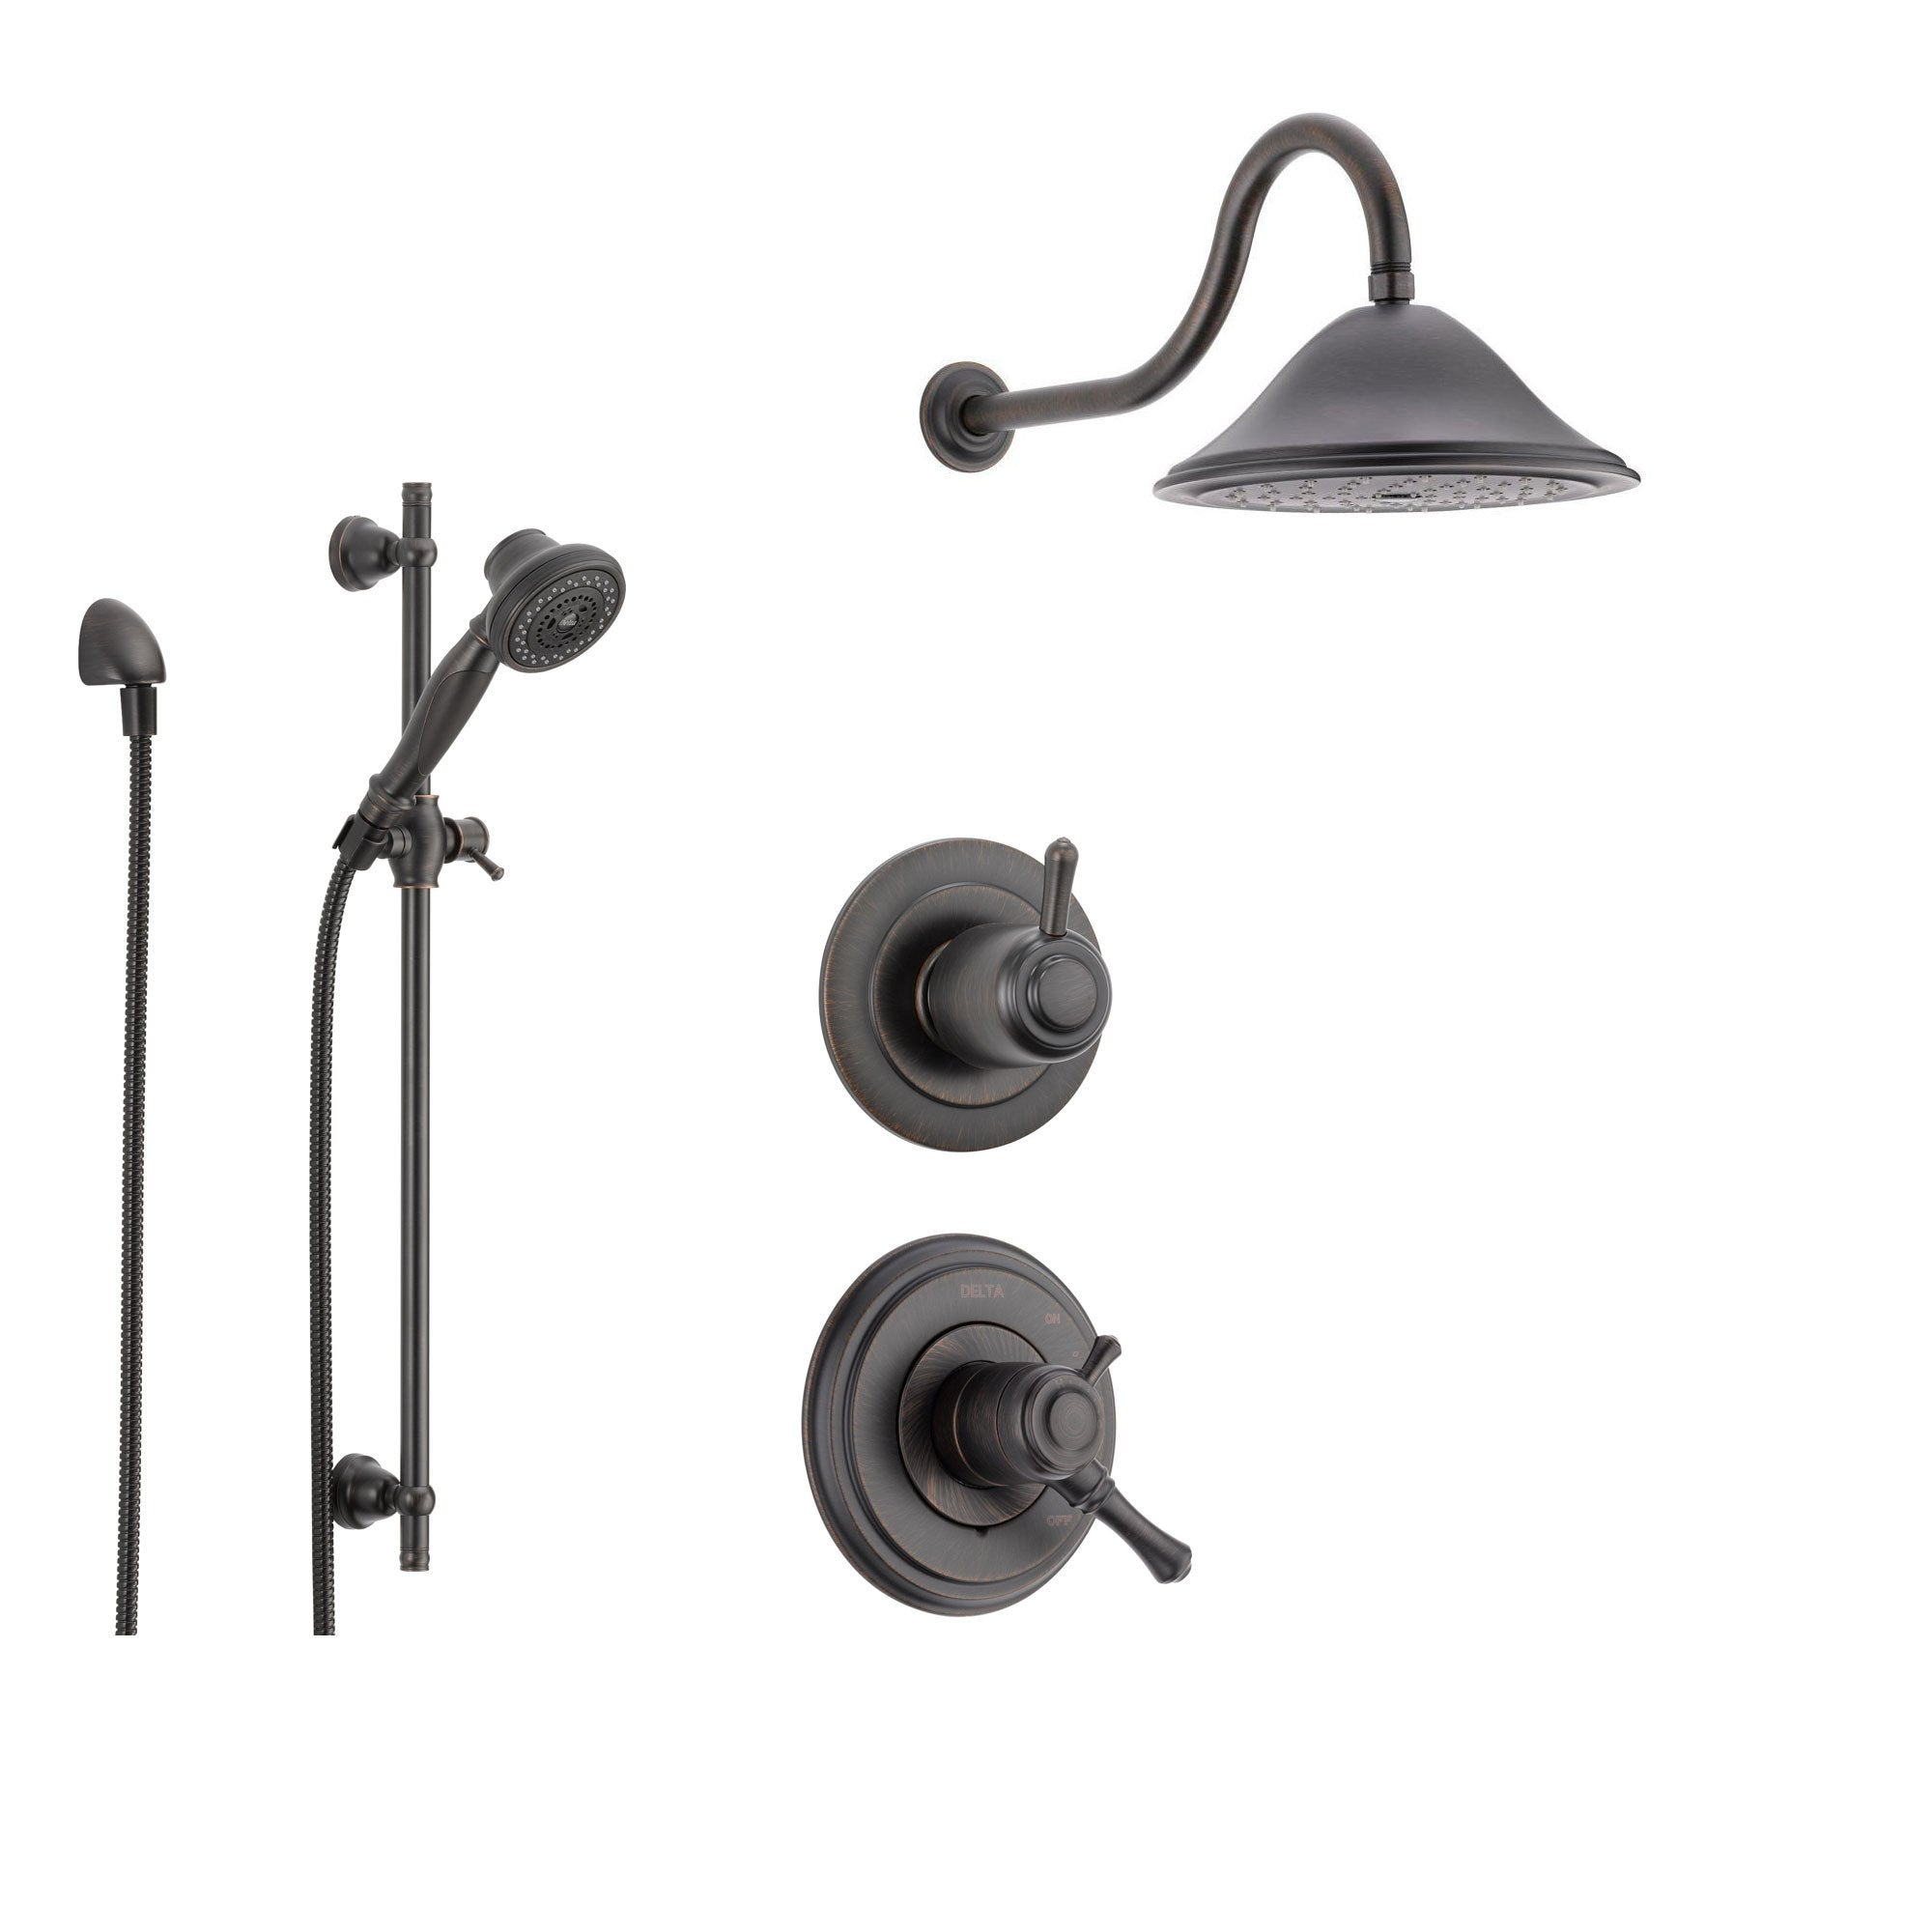 Delta Cassidy Venetian Bronze Shower System With Dual Control Shower Handle 3 Setting Diverter Large Rain Shower Head And Handheld Shower Spray